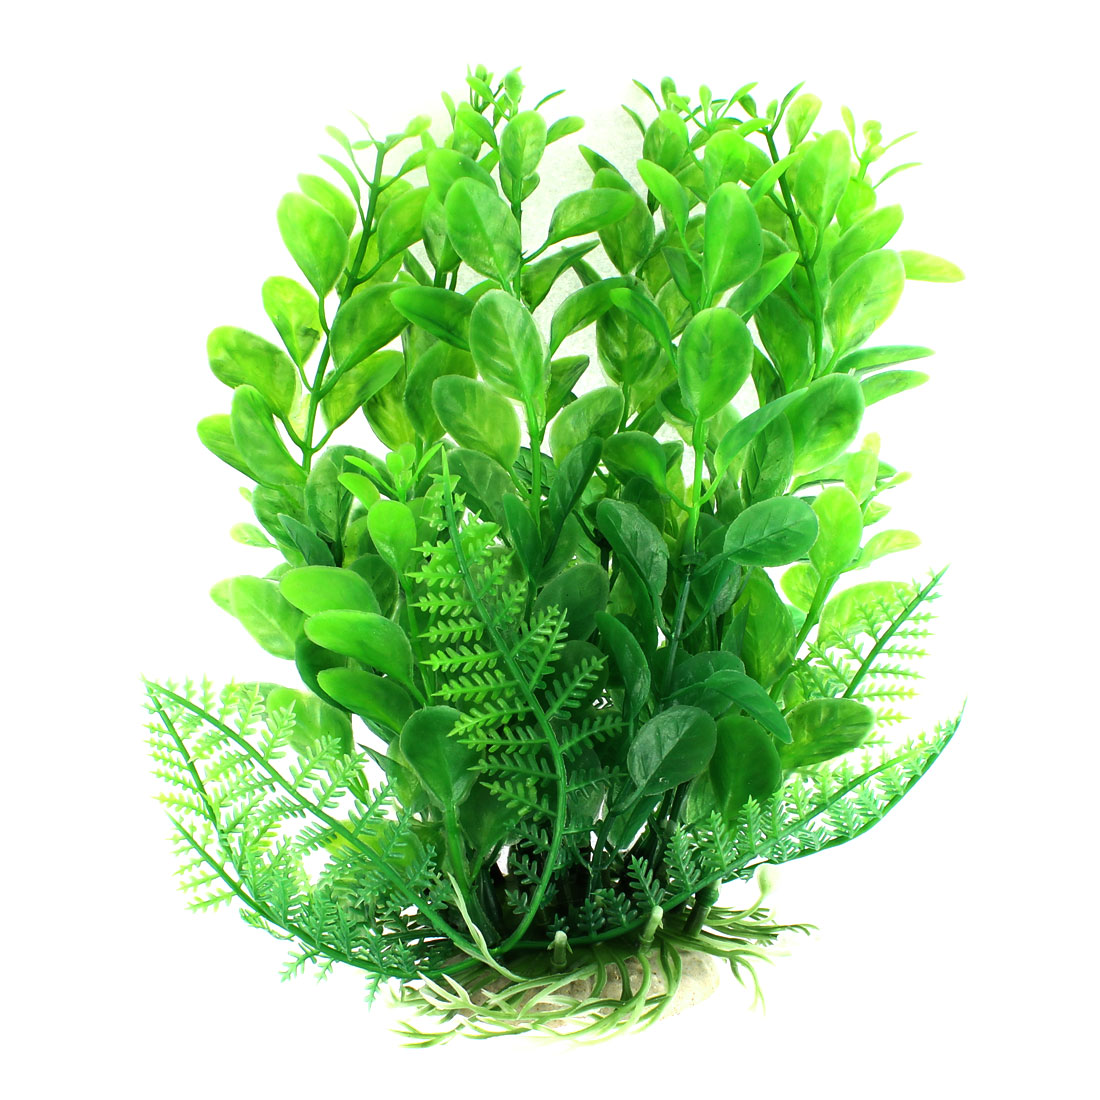 17cm Height Green Artificial Plastic Water Plant Grass Ornament for Aquarium